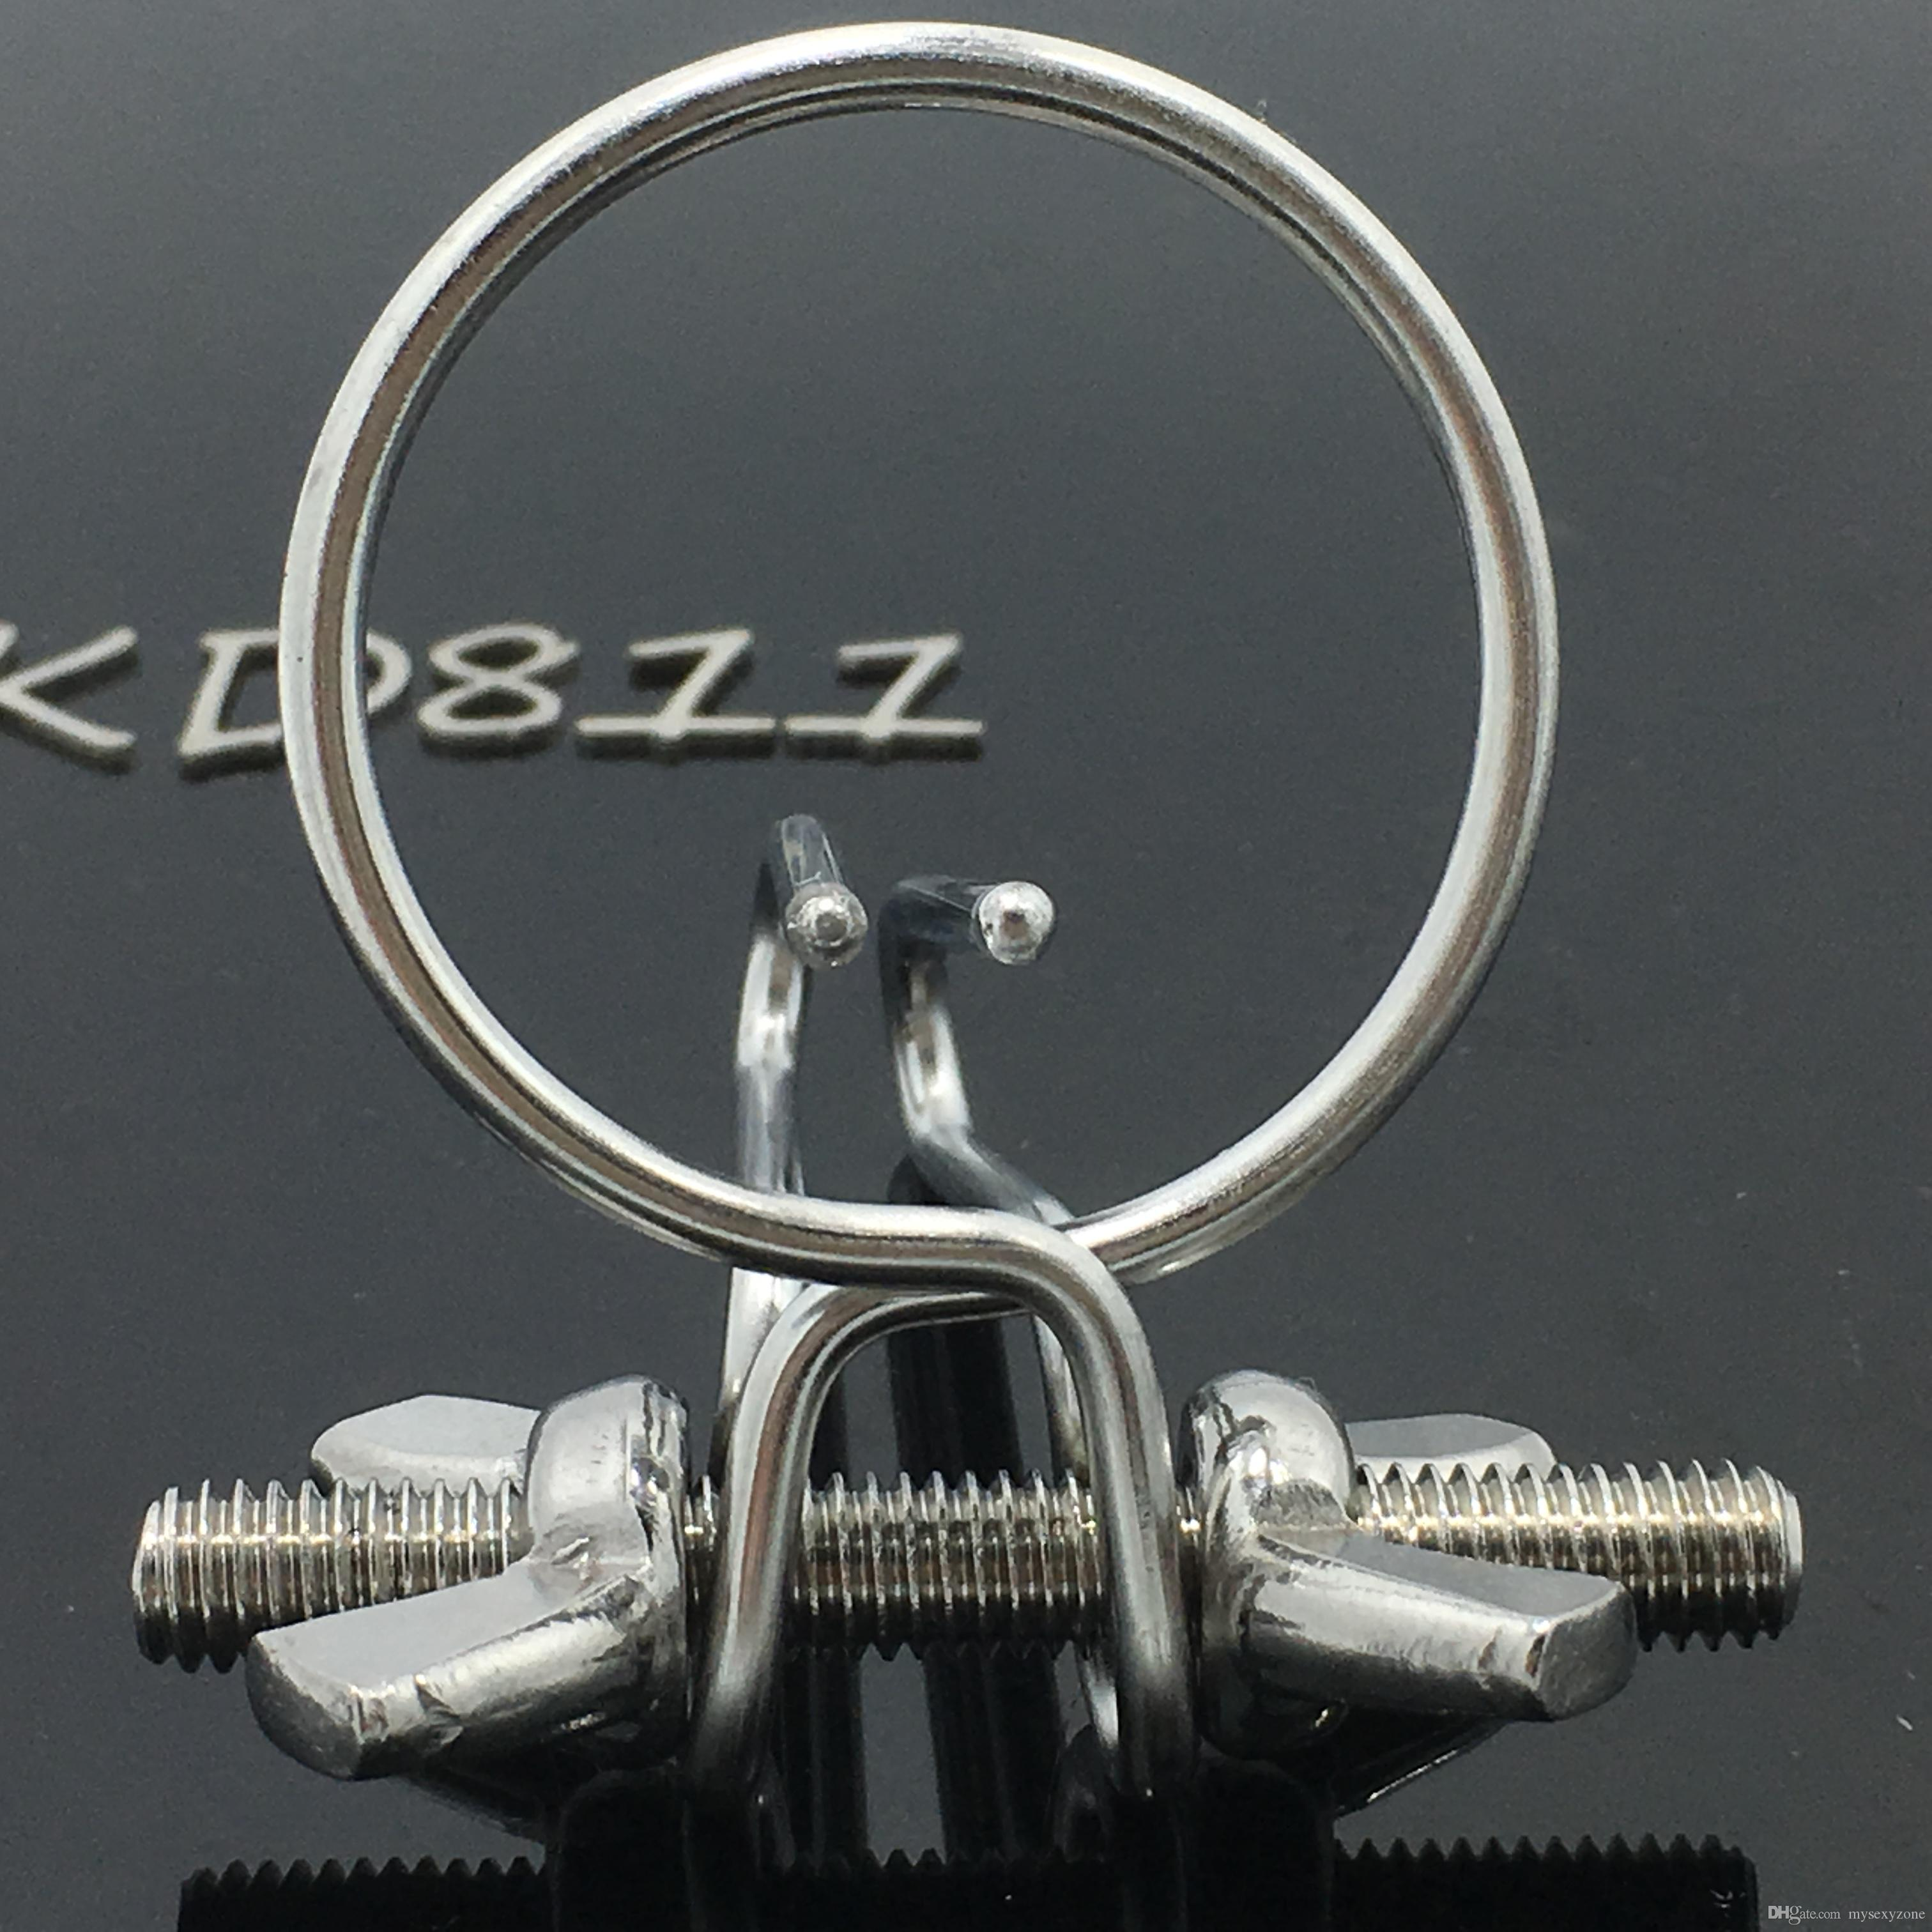 Hot selling stainless steel Stainless steel metal Male masturbation urethral dilator penis stimulating sex toys sex toy MKD811